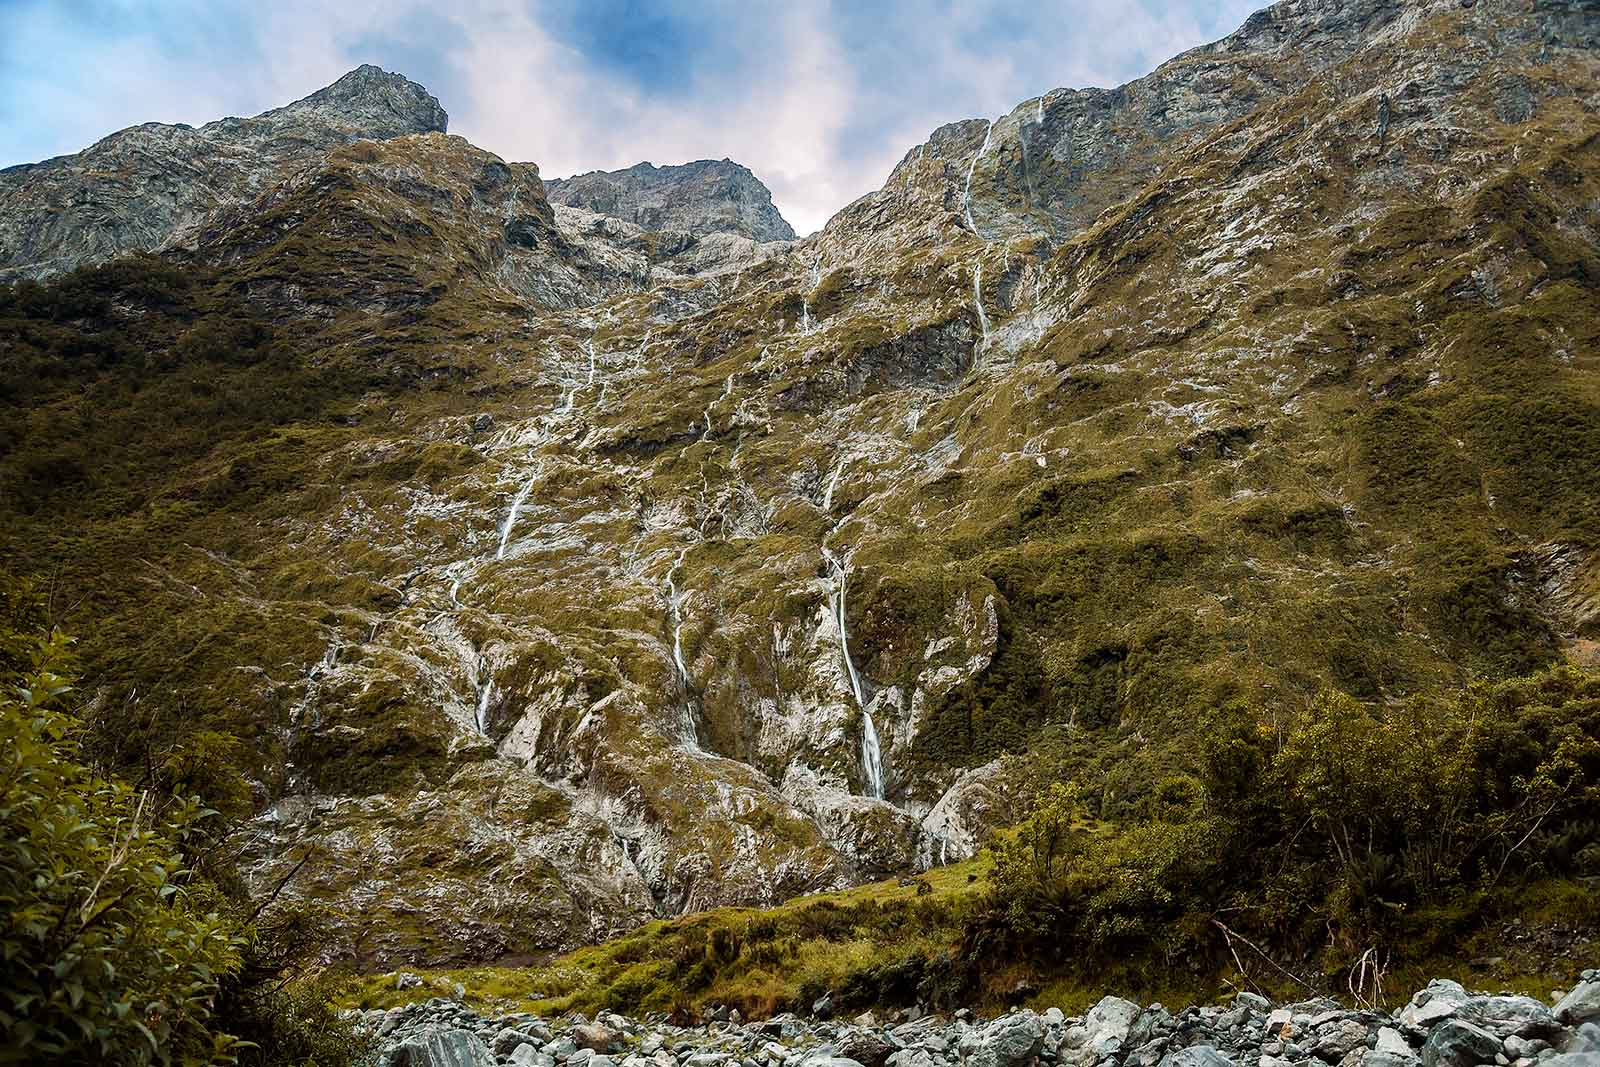 milford-track-day-2-clinton-valley-waterfall-new-zealand